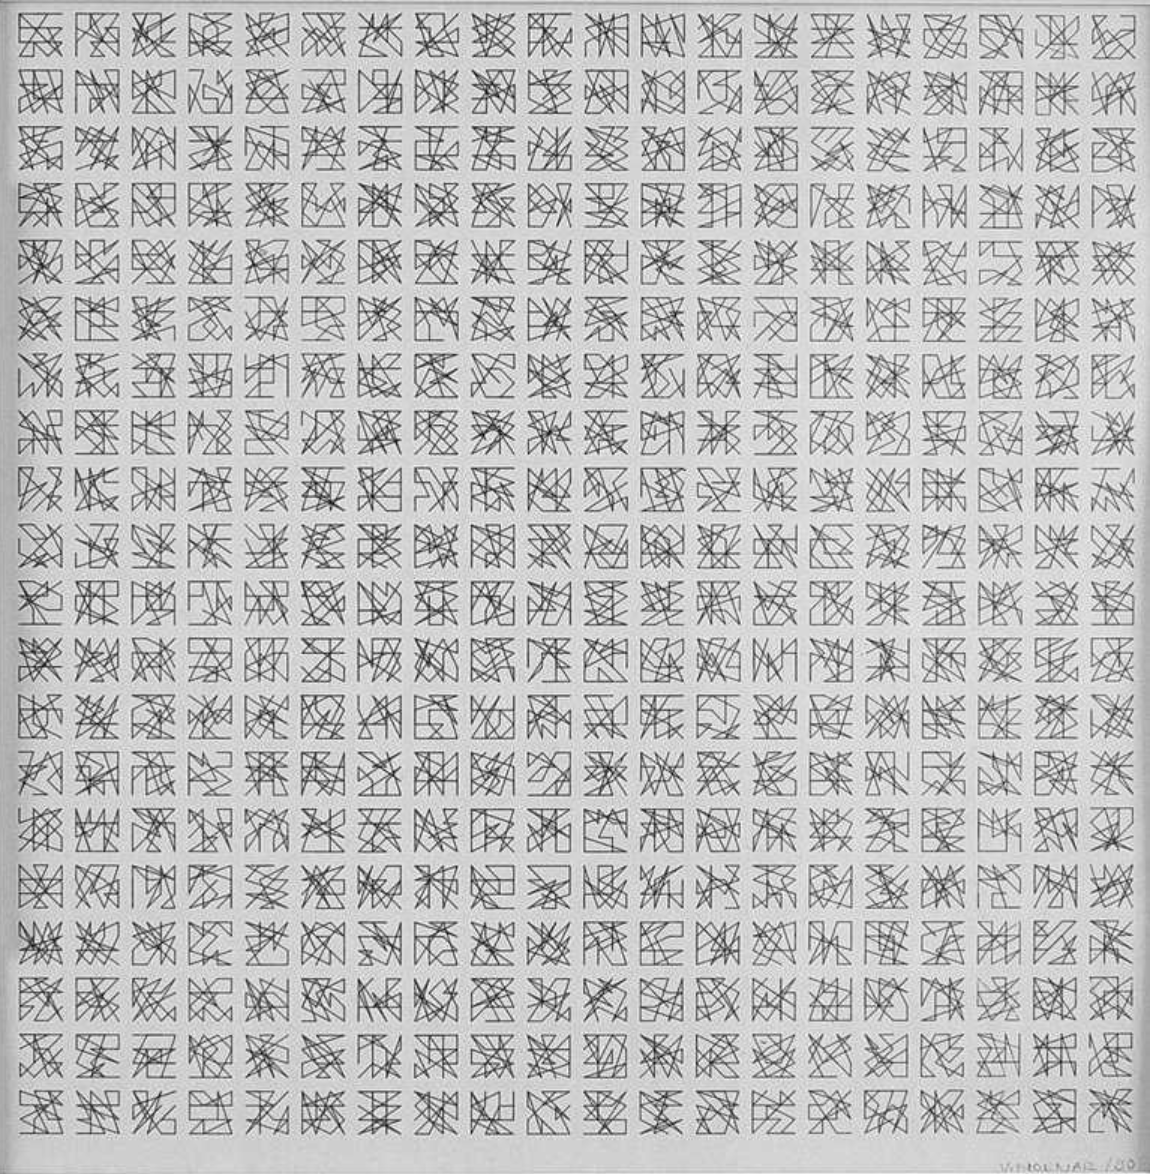 400 variations, plotter drawing, open series 1990, +/- 30 x 30 cm